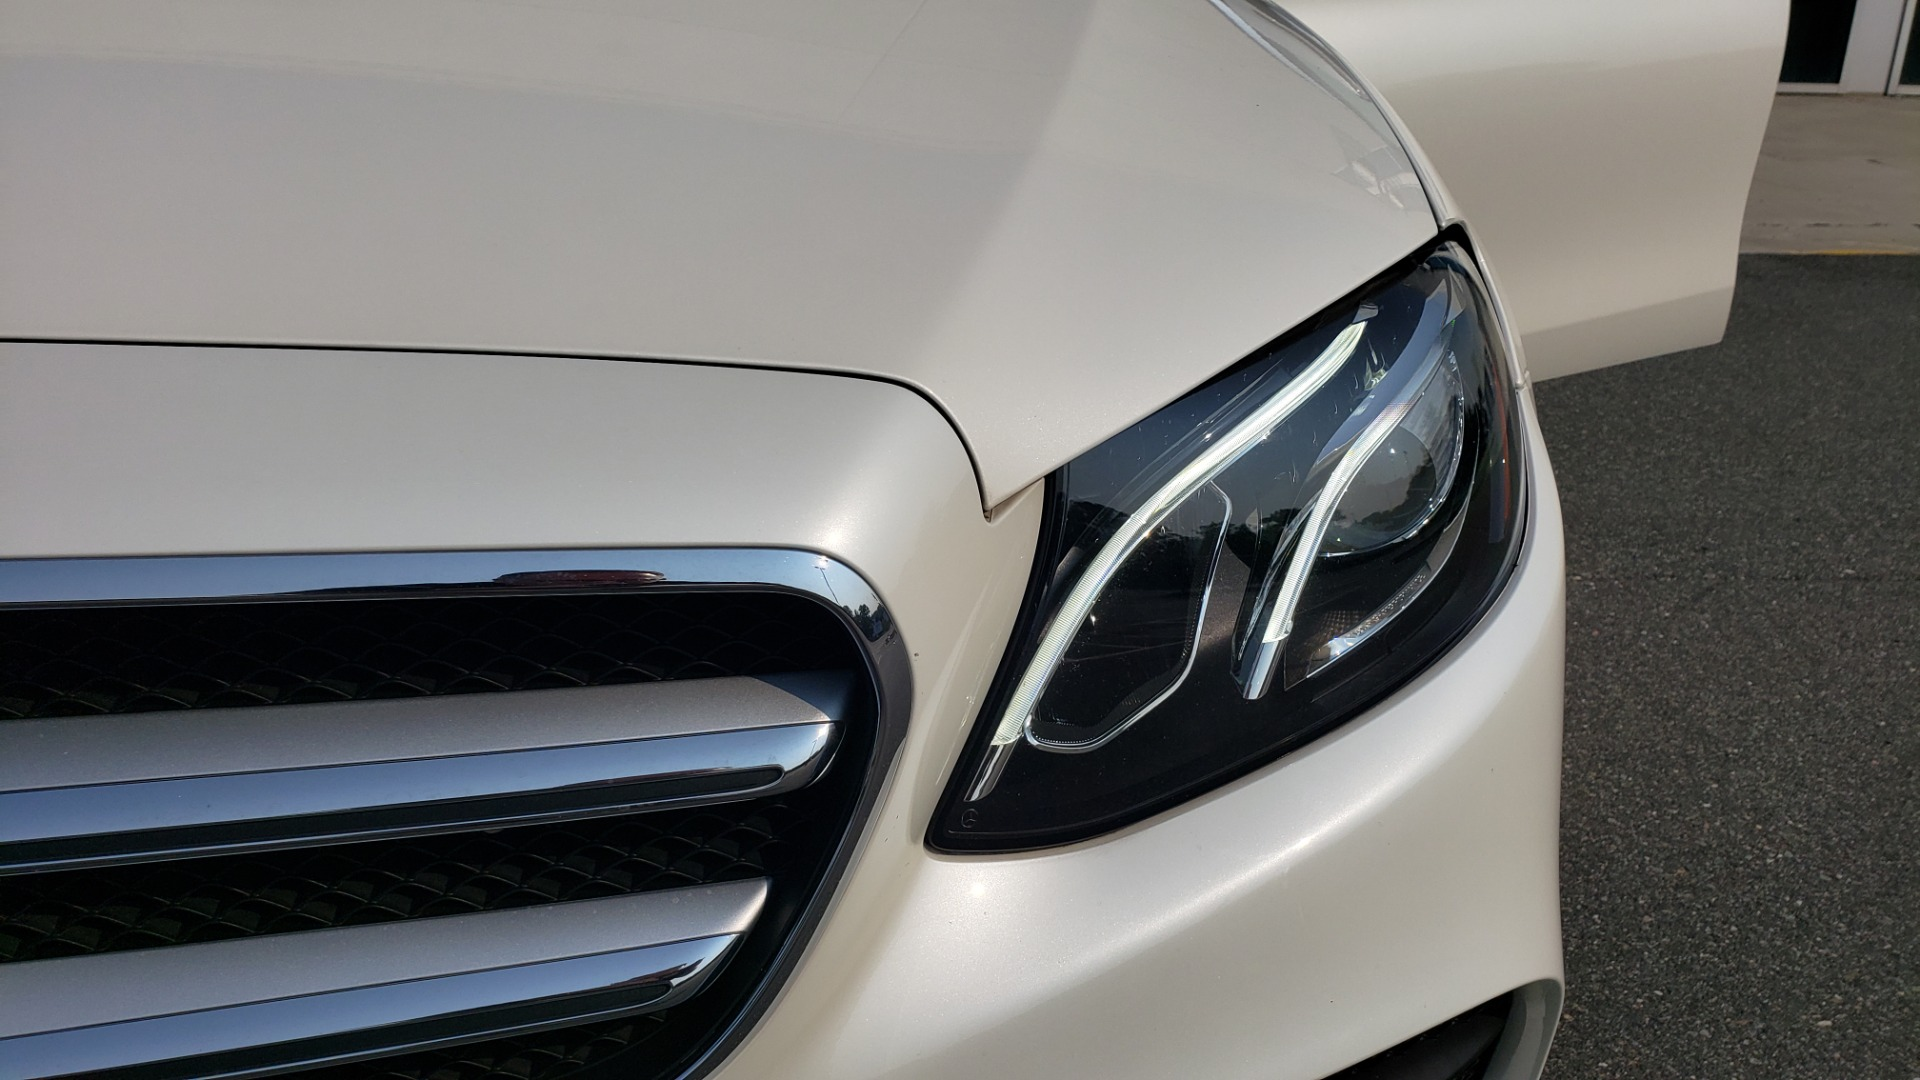 Used 2018 Mercedes-Benz E-CLASS E 300 4MATIC / PREMIUM / NAV / PANO-ROOF / BURMESTER / REARVIEW for sale $41,995 at Formula Imports in Charlotte NC 28227 21